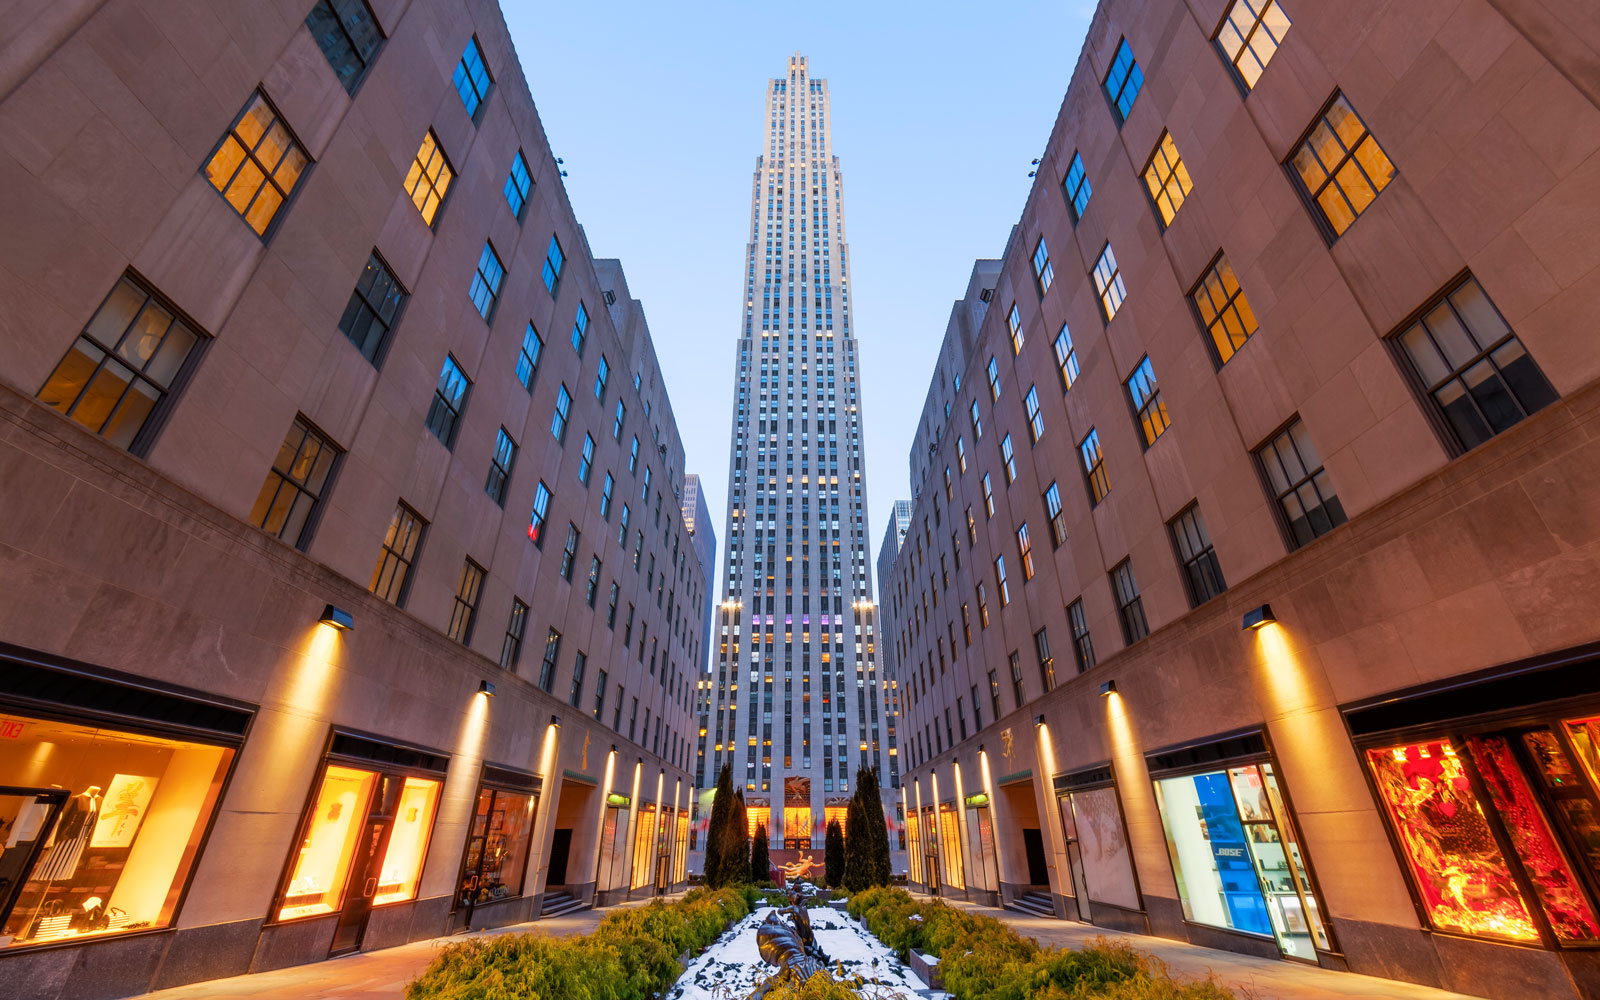 Rockefeller Center is Getting a Huge Renovation